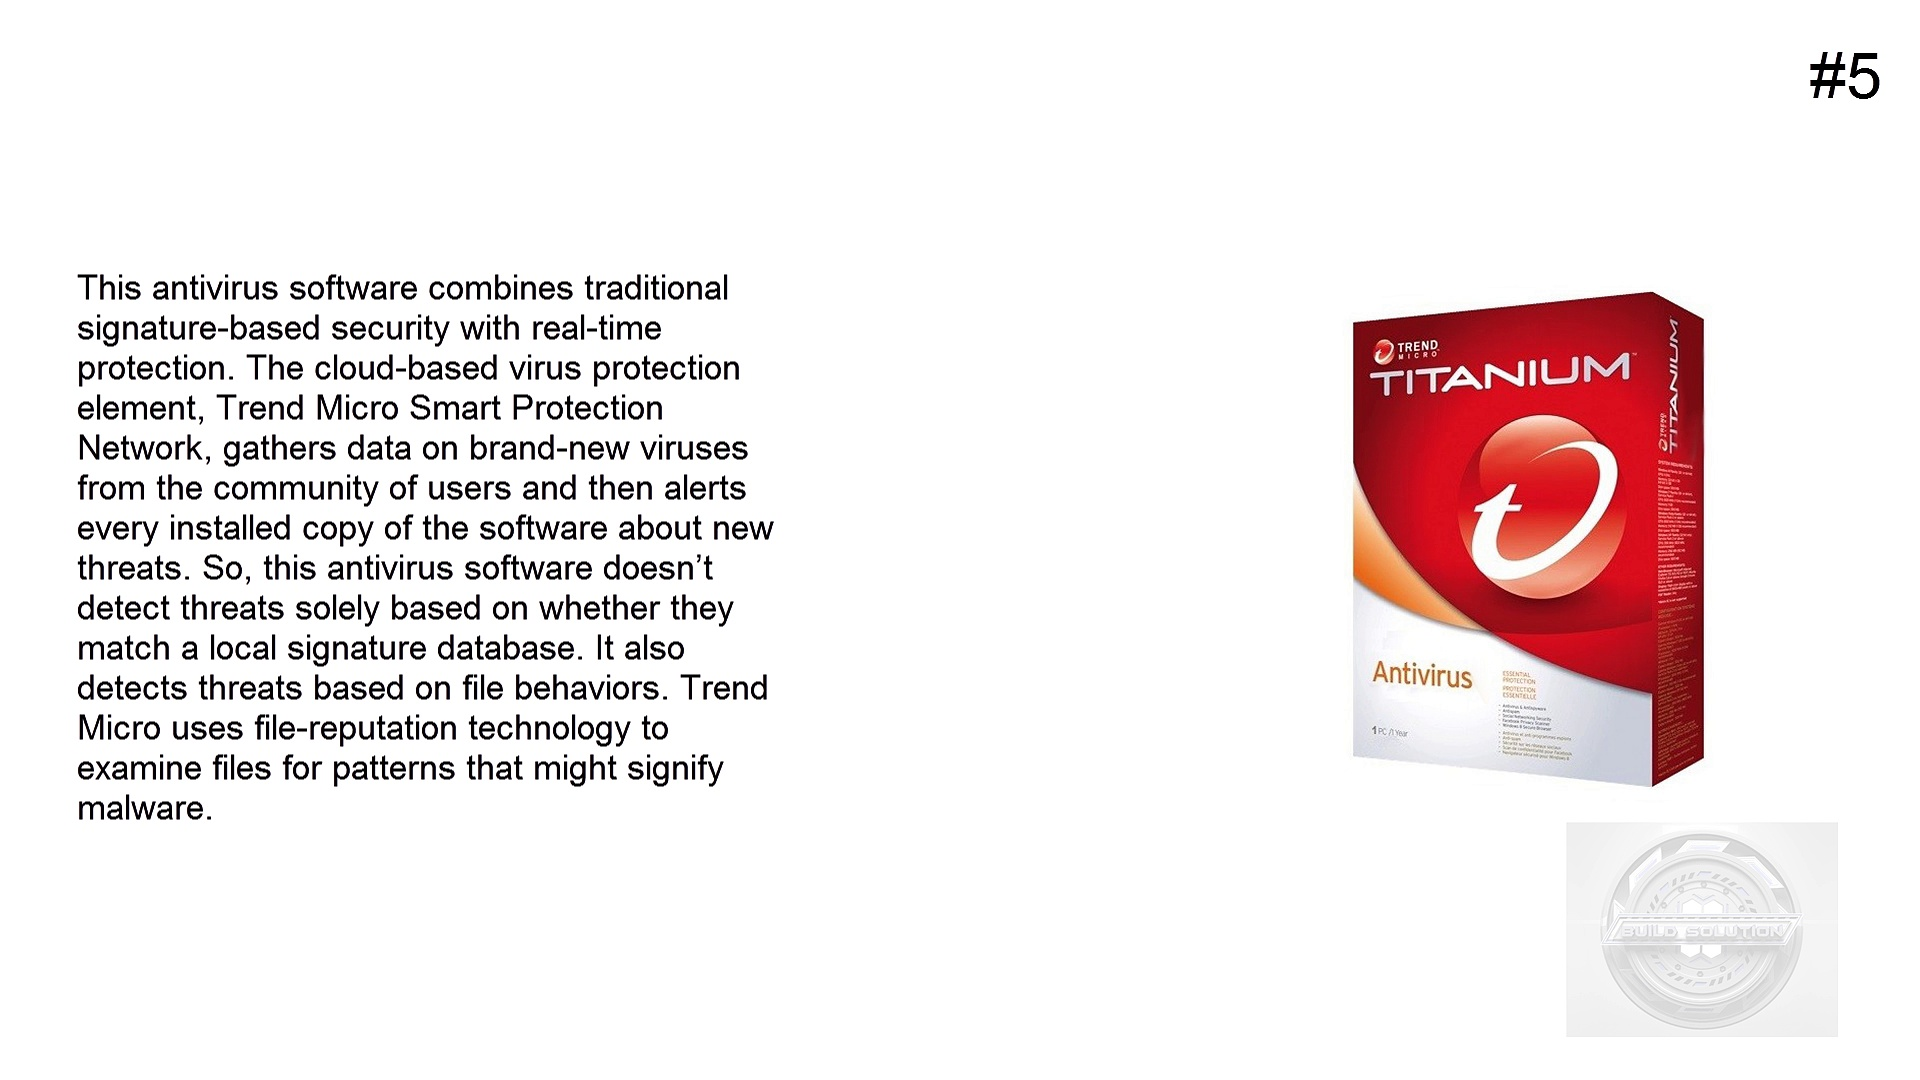 Top 5 Best Antivirus Software For 2015